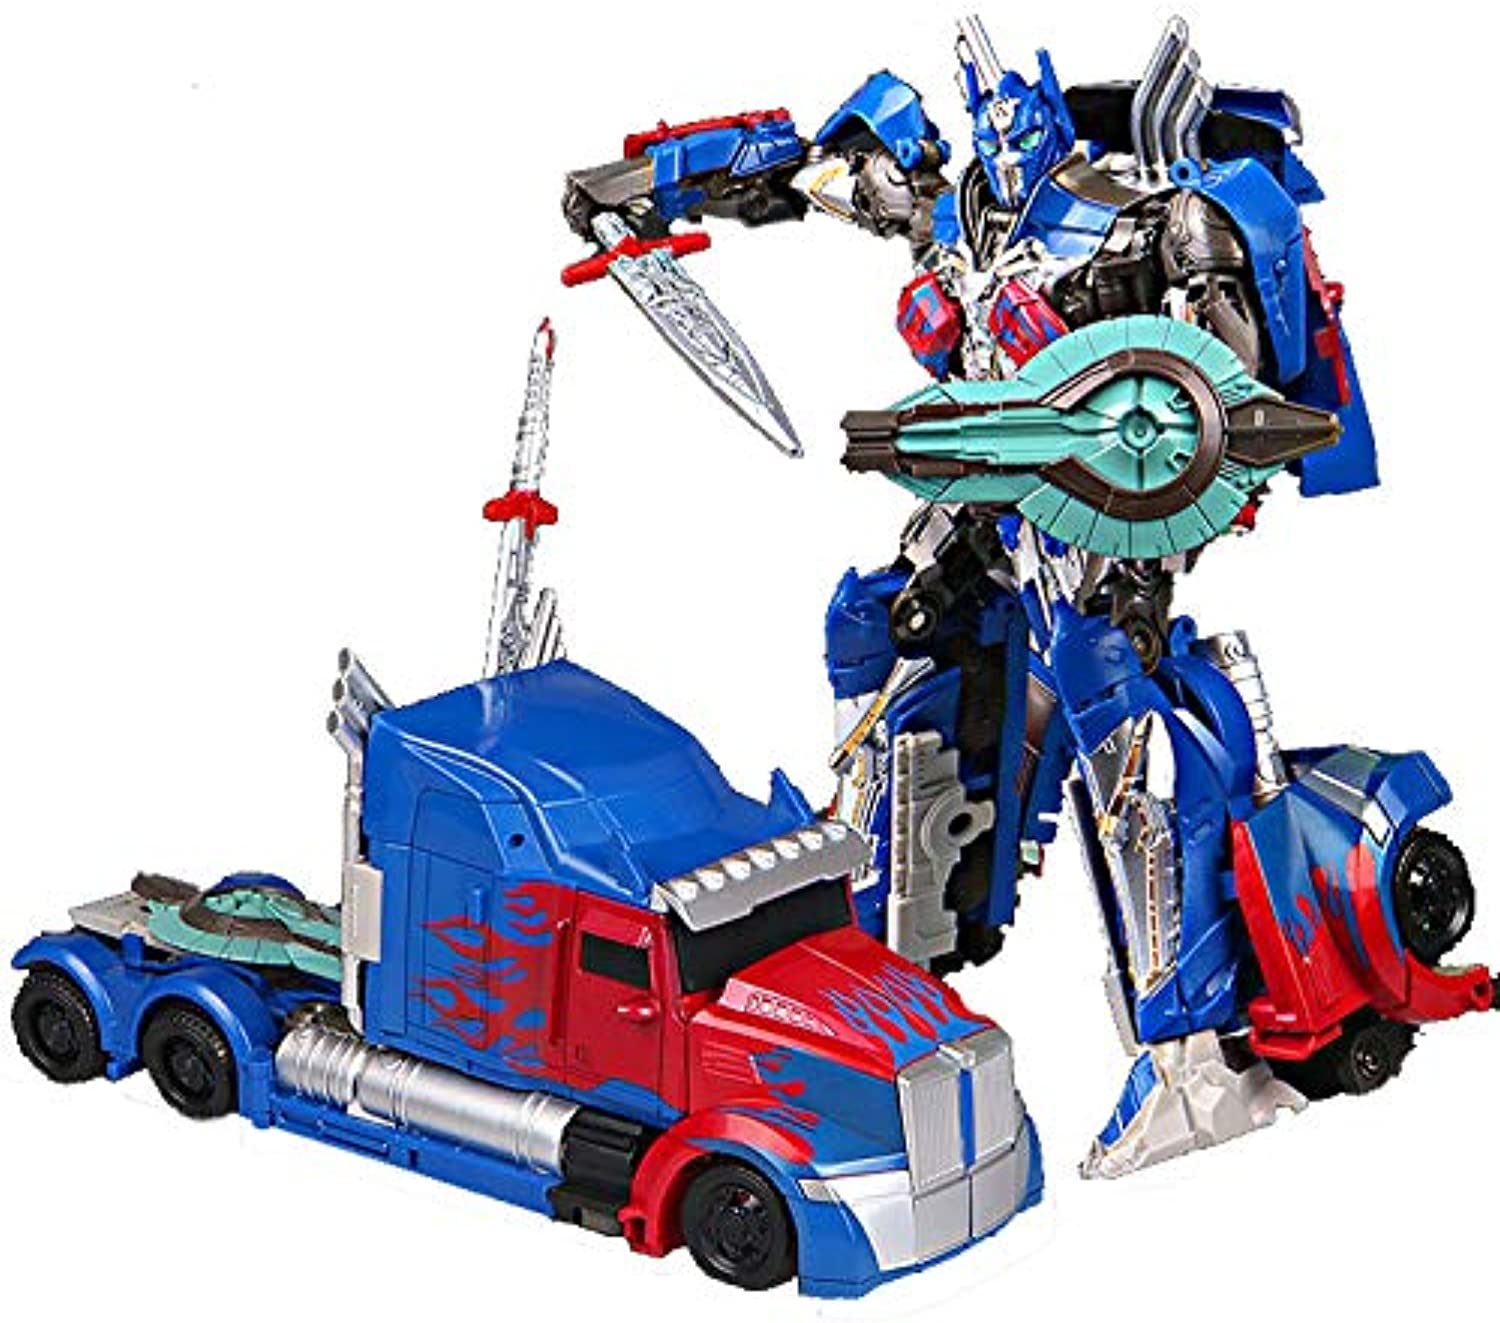 Transformer The Last Knight Film MPM04 Optimus Prime OP MPP10 MP10 M01 Oversize Alloy Action Figure Robot Toys Gift for Kids Boys